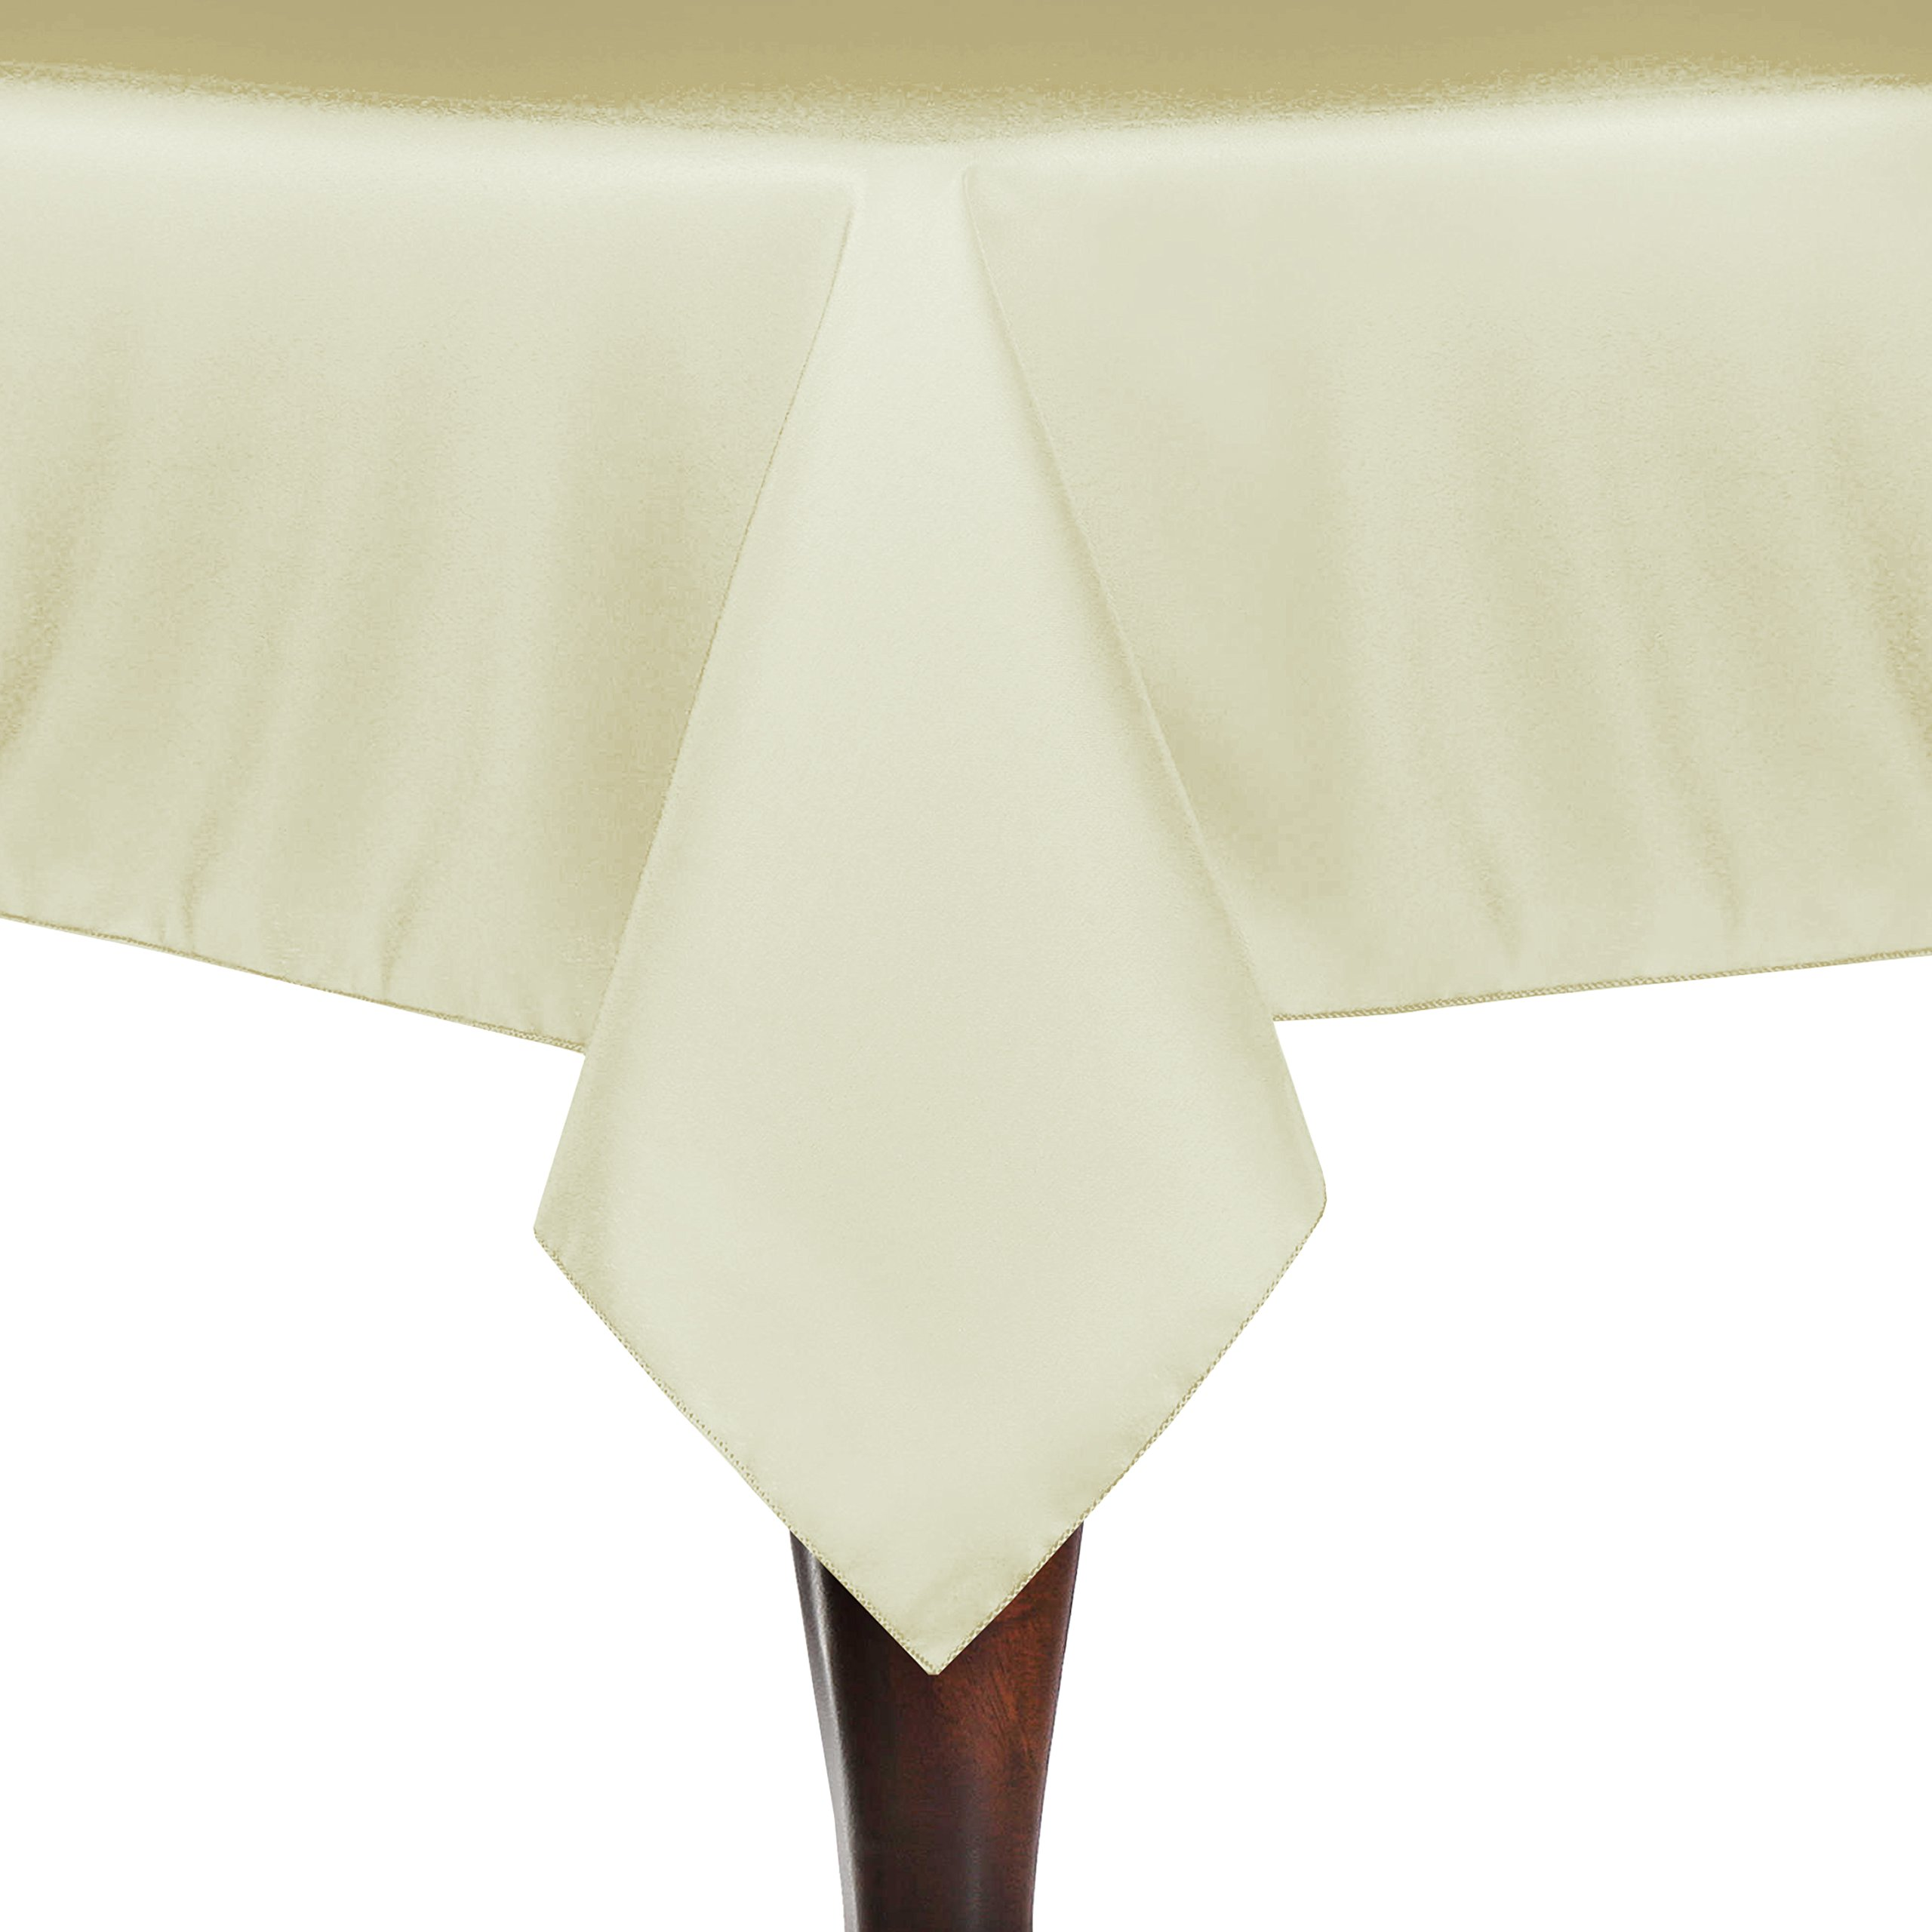 Ultimate Textile (60 Pack) 60 x 60-Inch Square Polyester Linen Tablecloth - for Wedding, Restaurant or Banquet use, Tan Beige